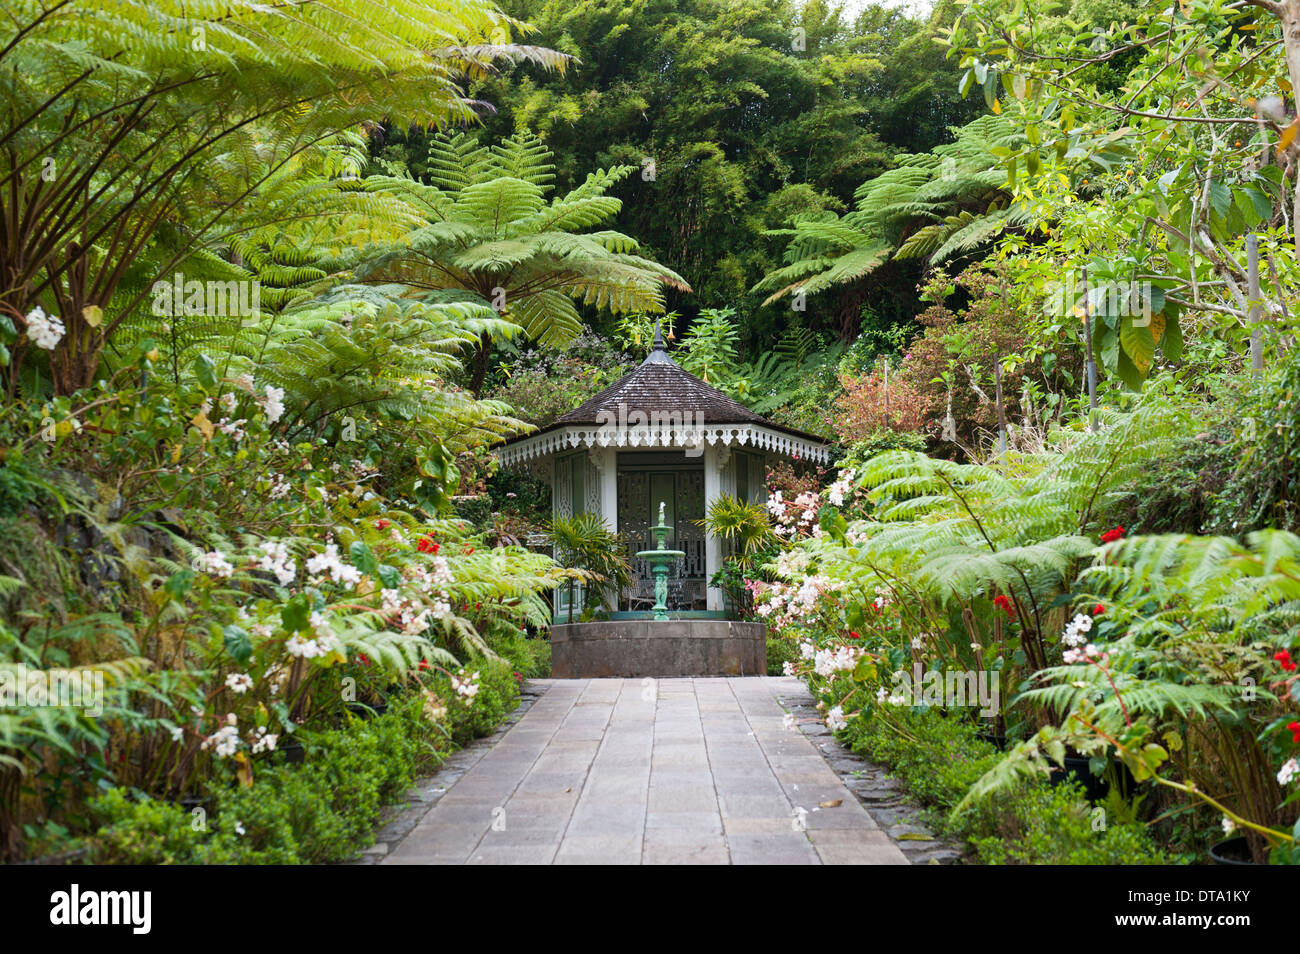 Merveilleux Creole Architecture, Garden With A Fountain, Gazebo, Maison Folio, Tropical  Vegetation With Tree Ferns (Cyatheales)